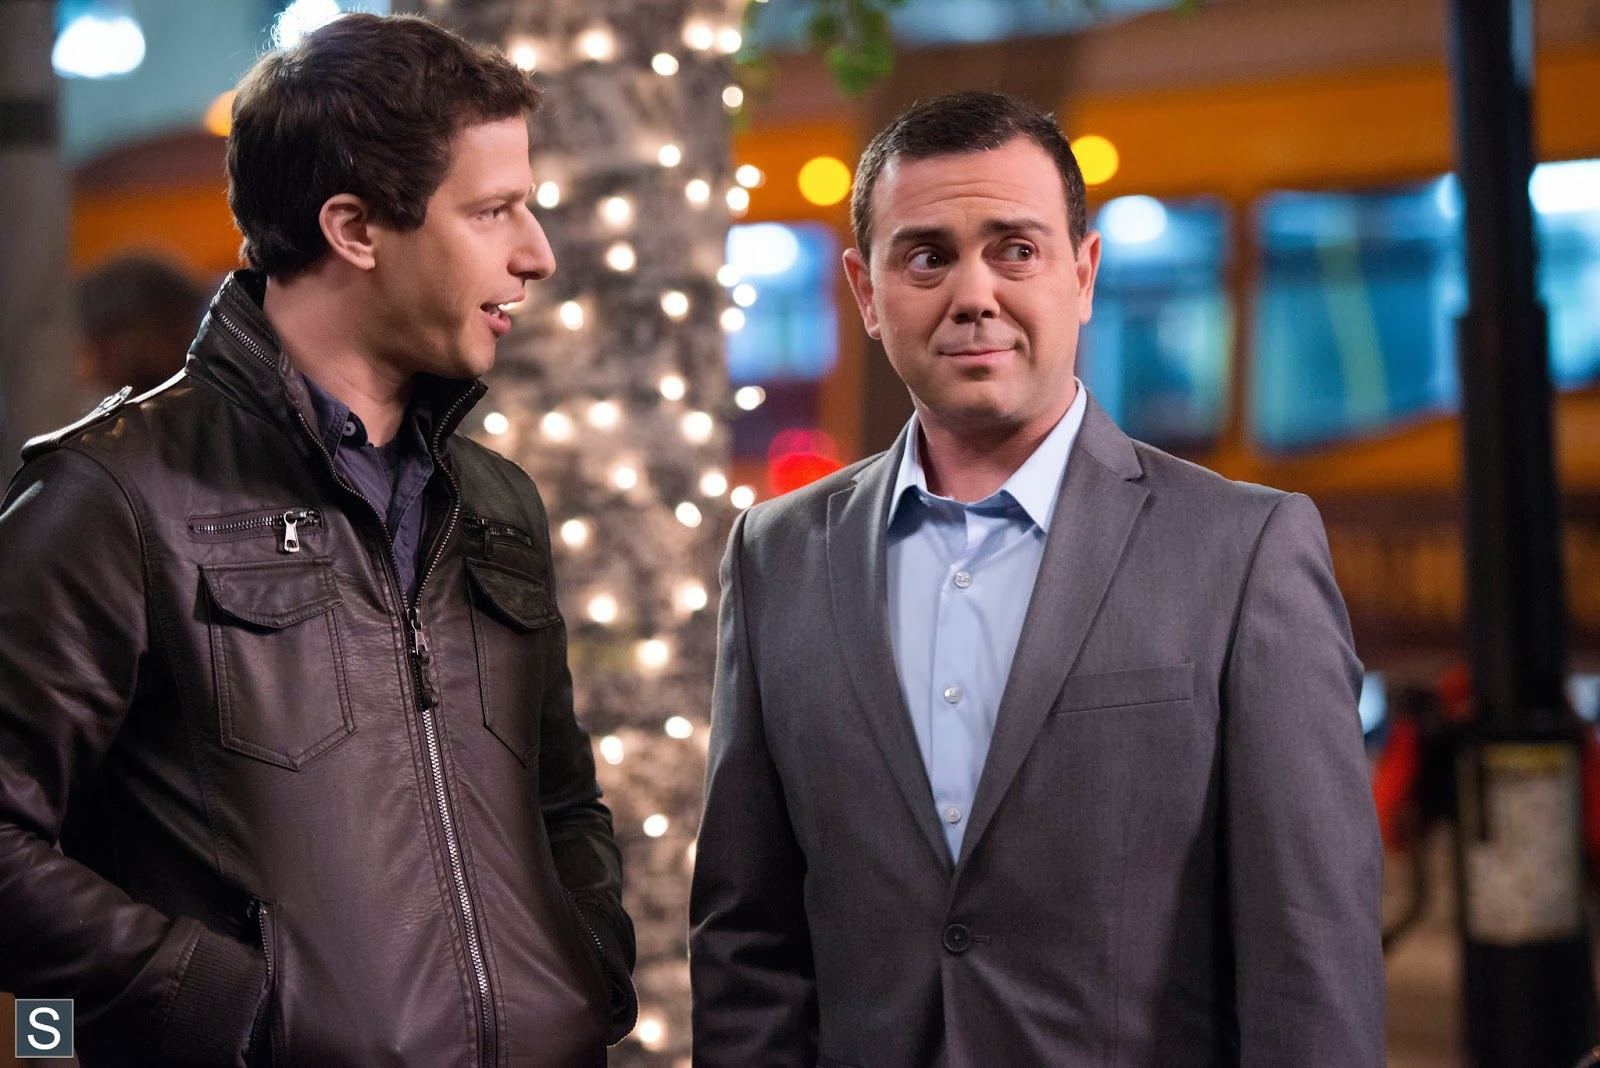 Brooklyn Nine-Nine - Episode 1.17 - Full Boyle - Review